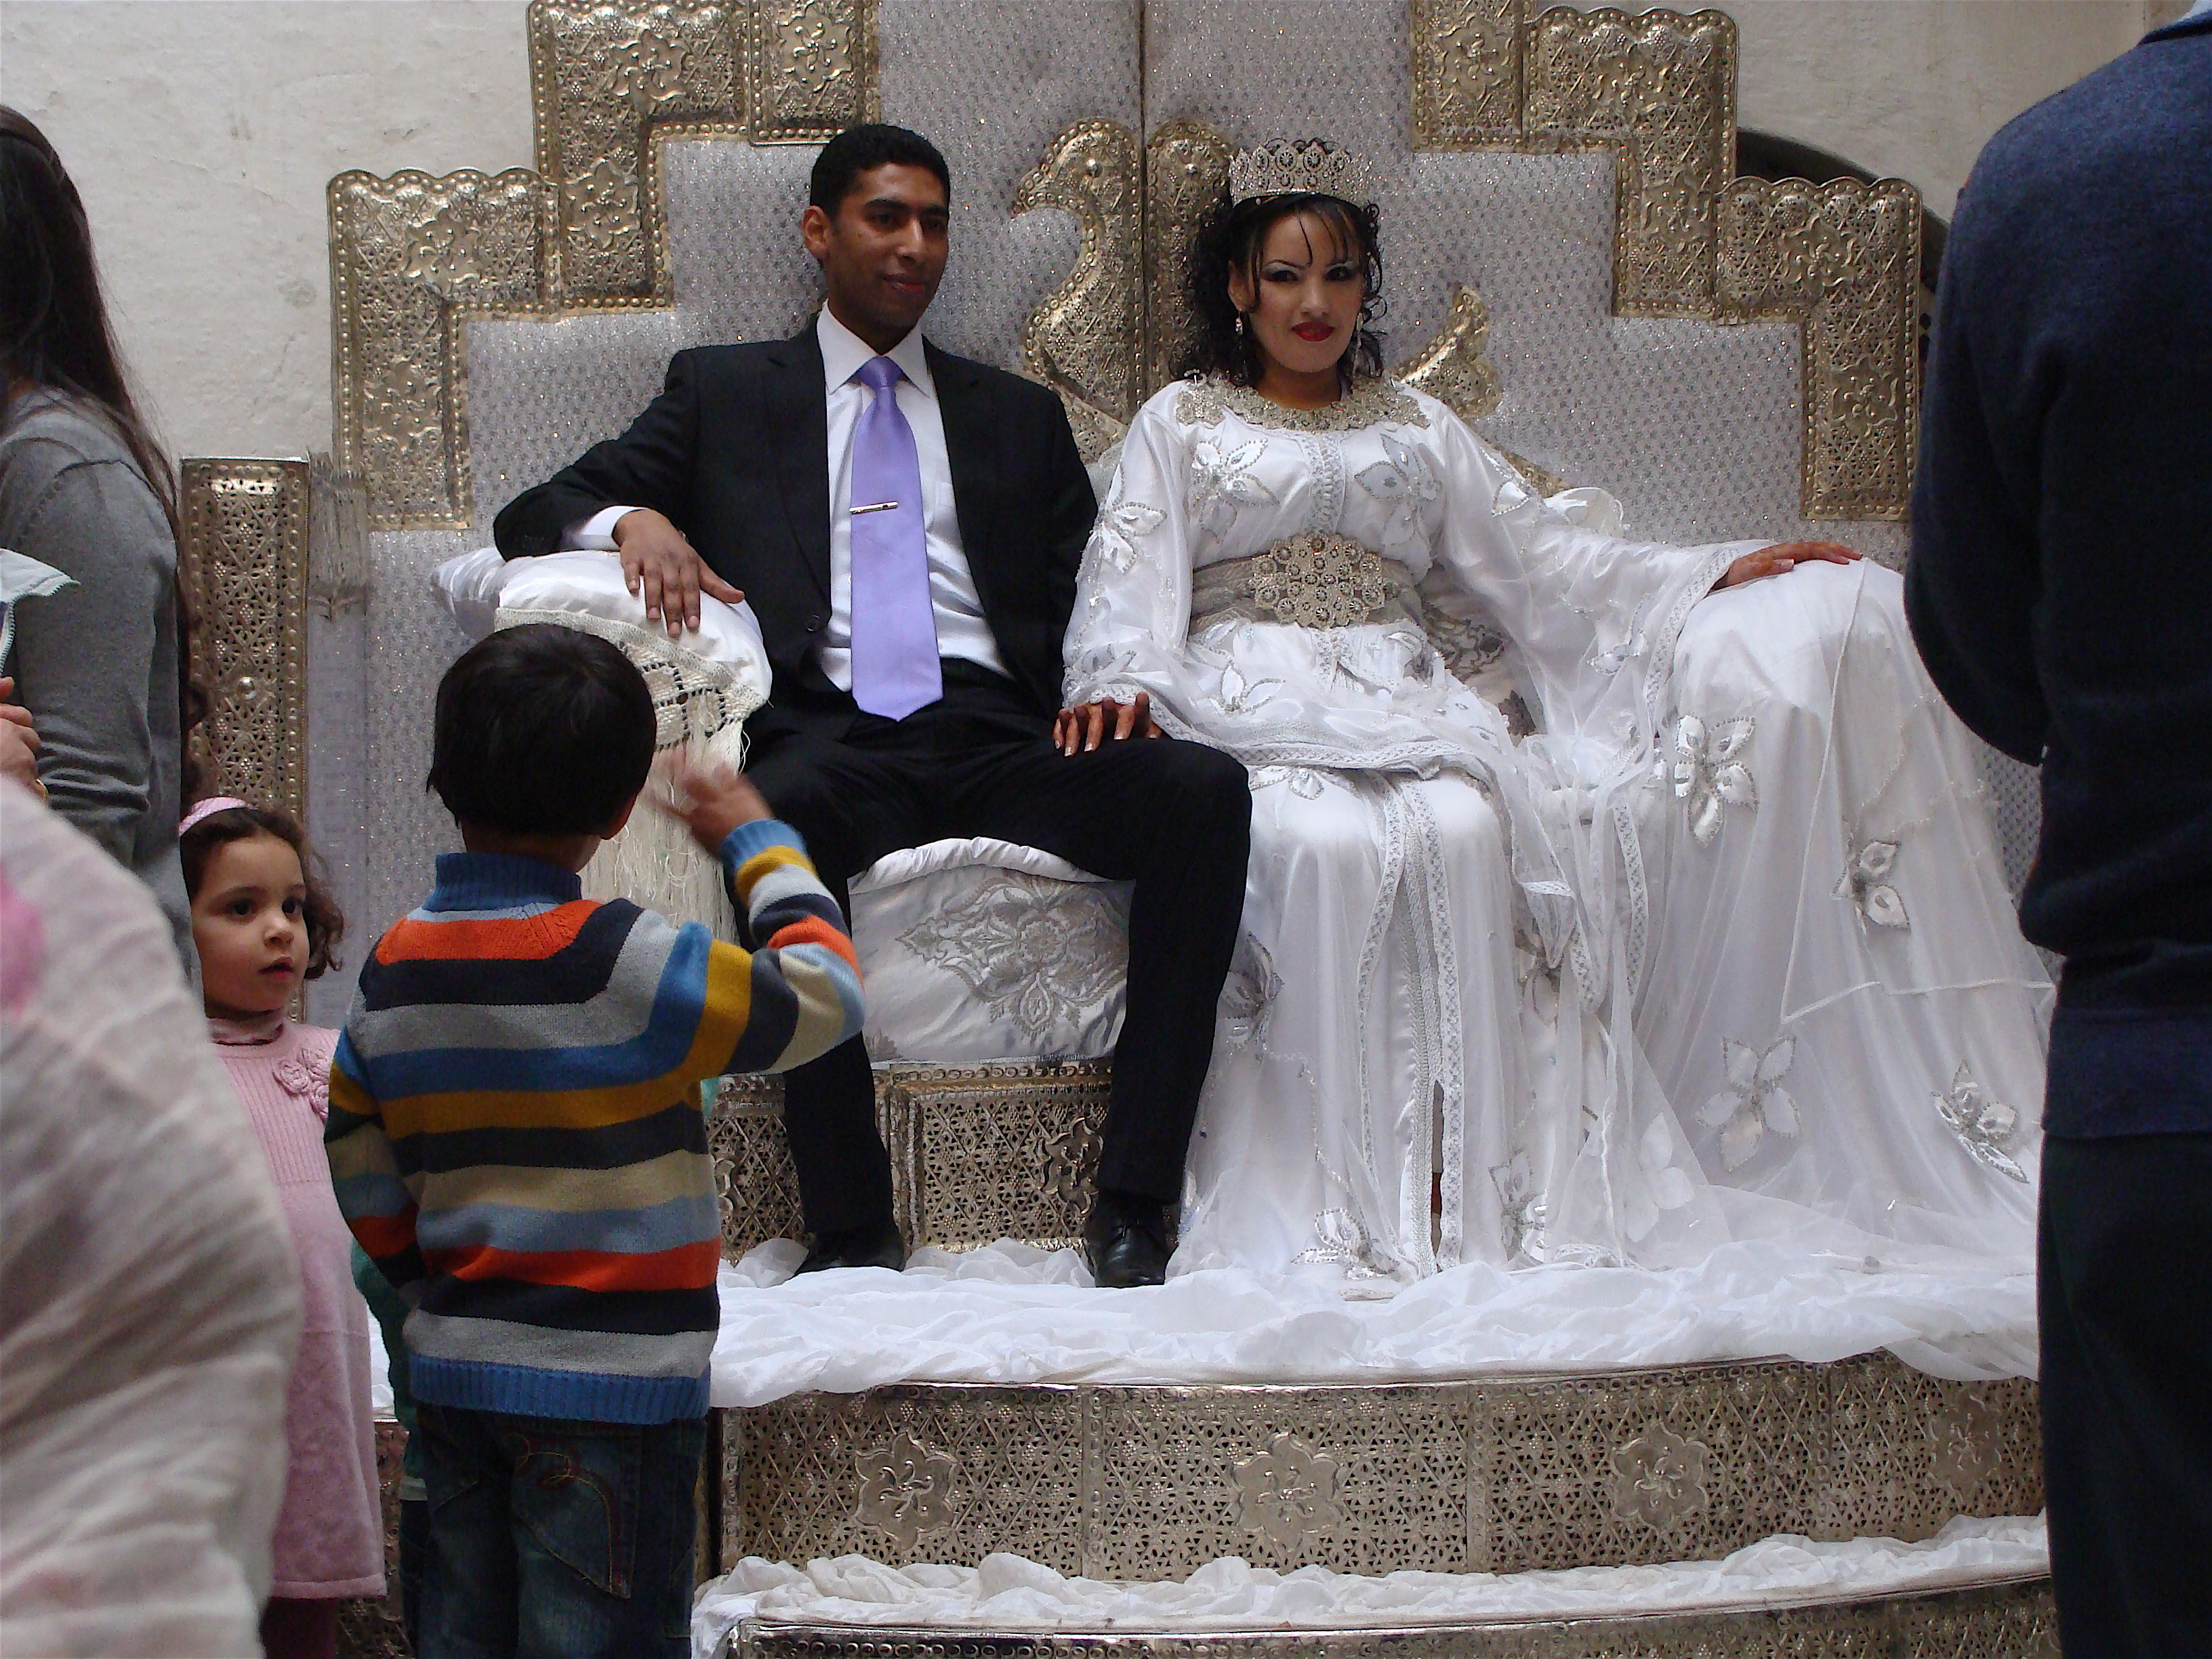 Morocco marriage